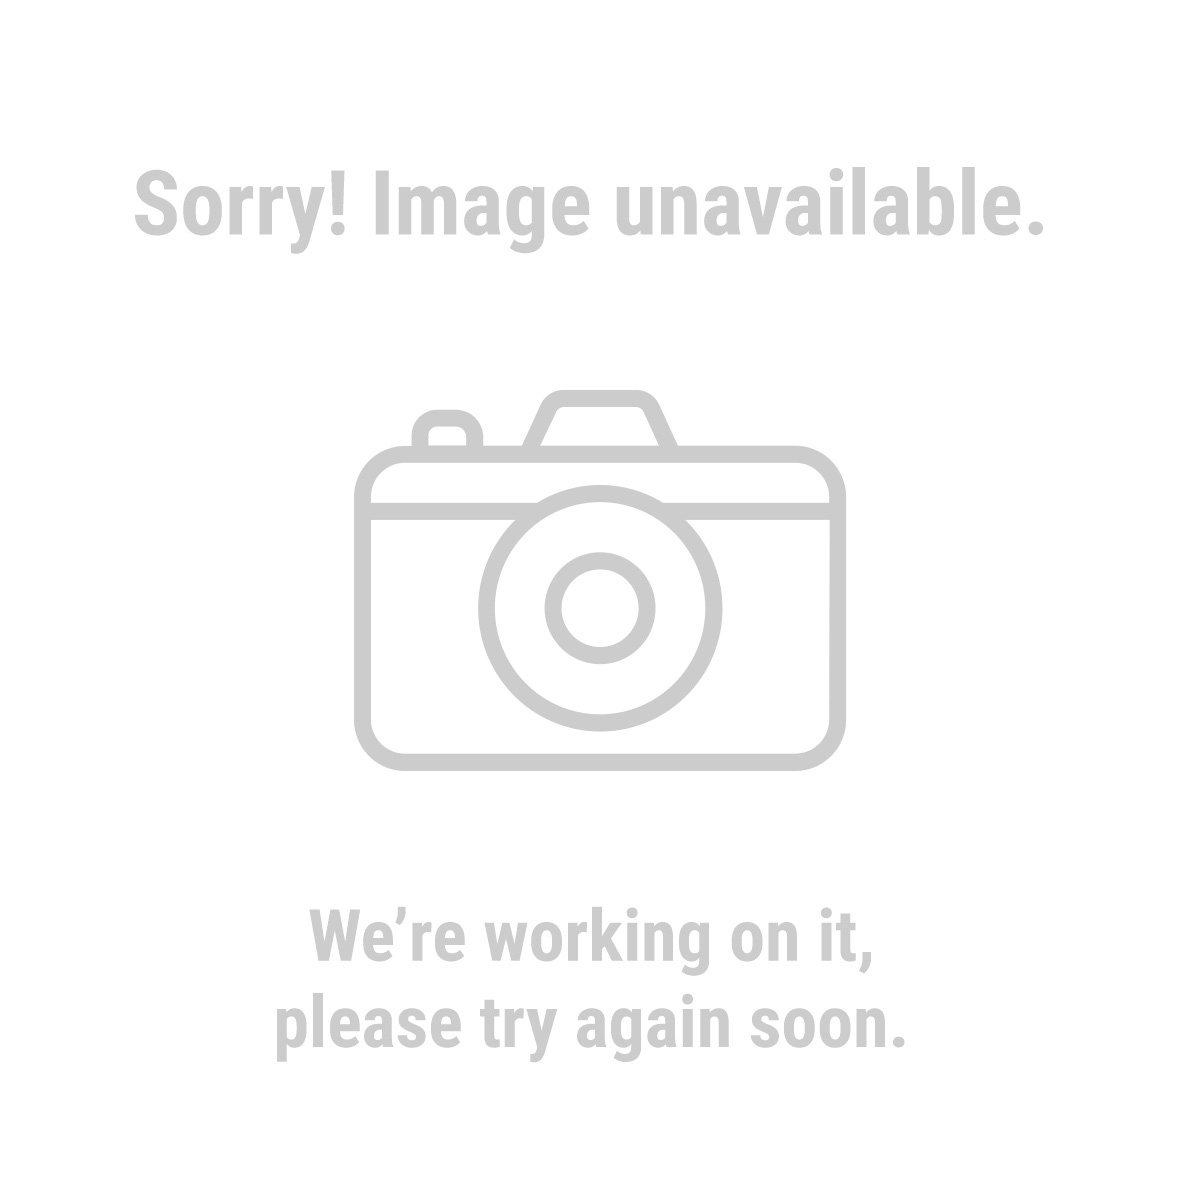 Pittsburgh Automotive 69597 Jack Stands, 3 Ton Heavy Duty